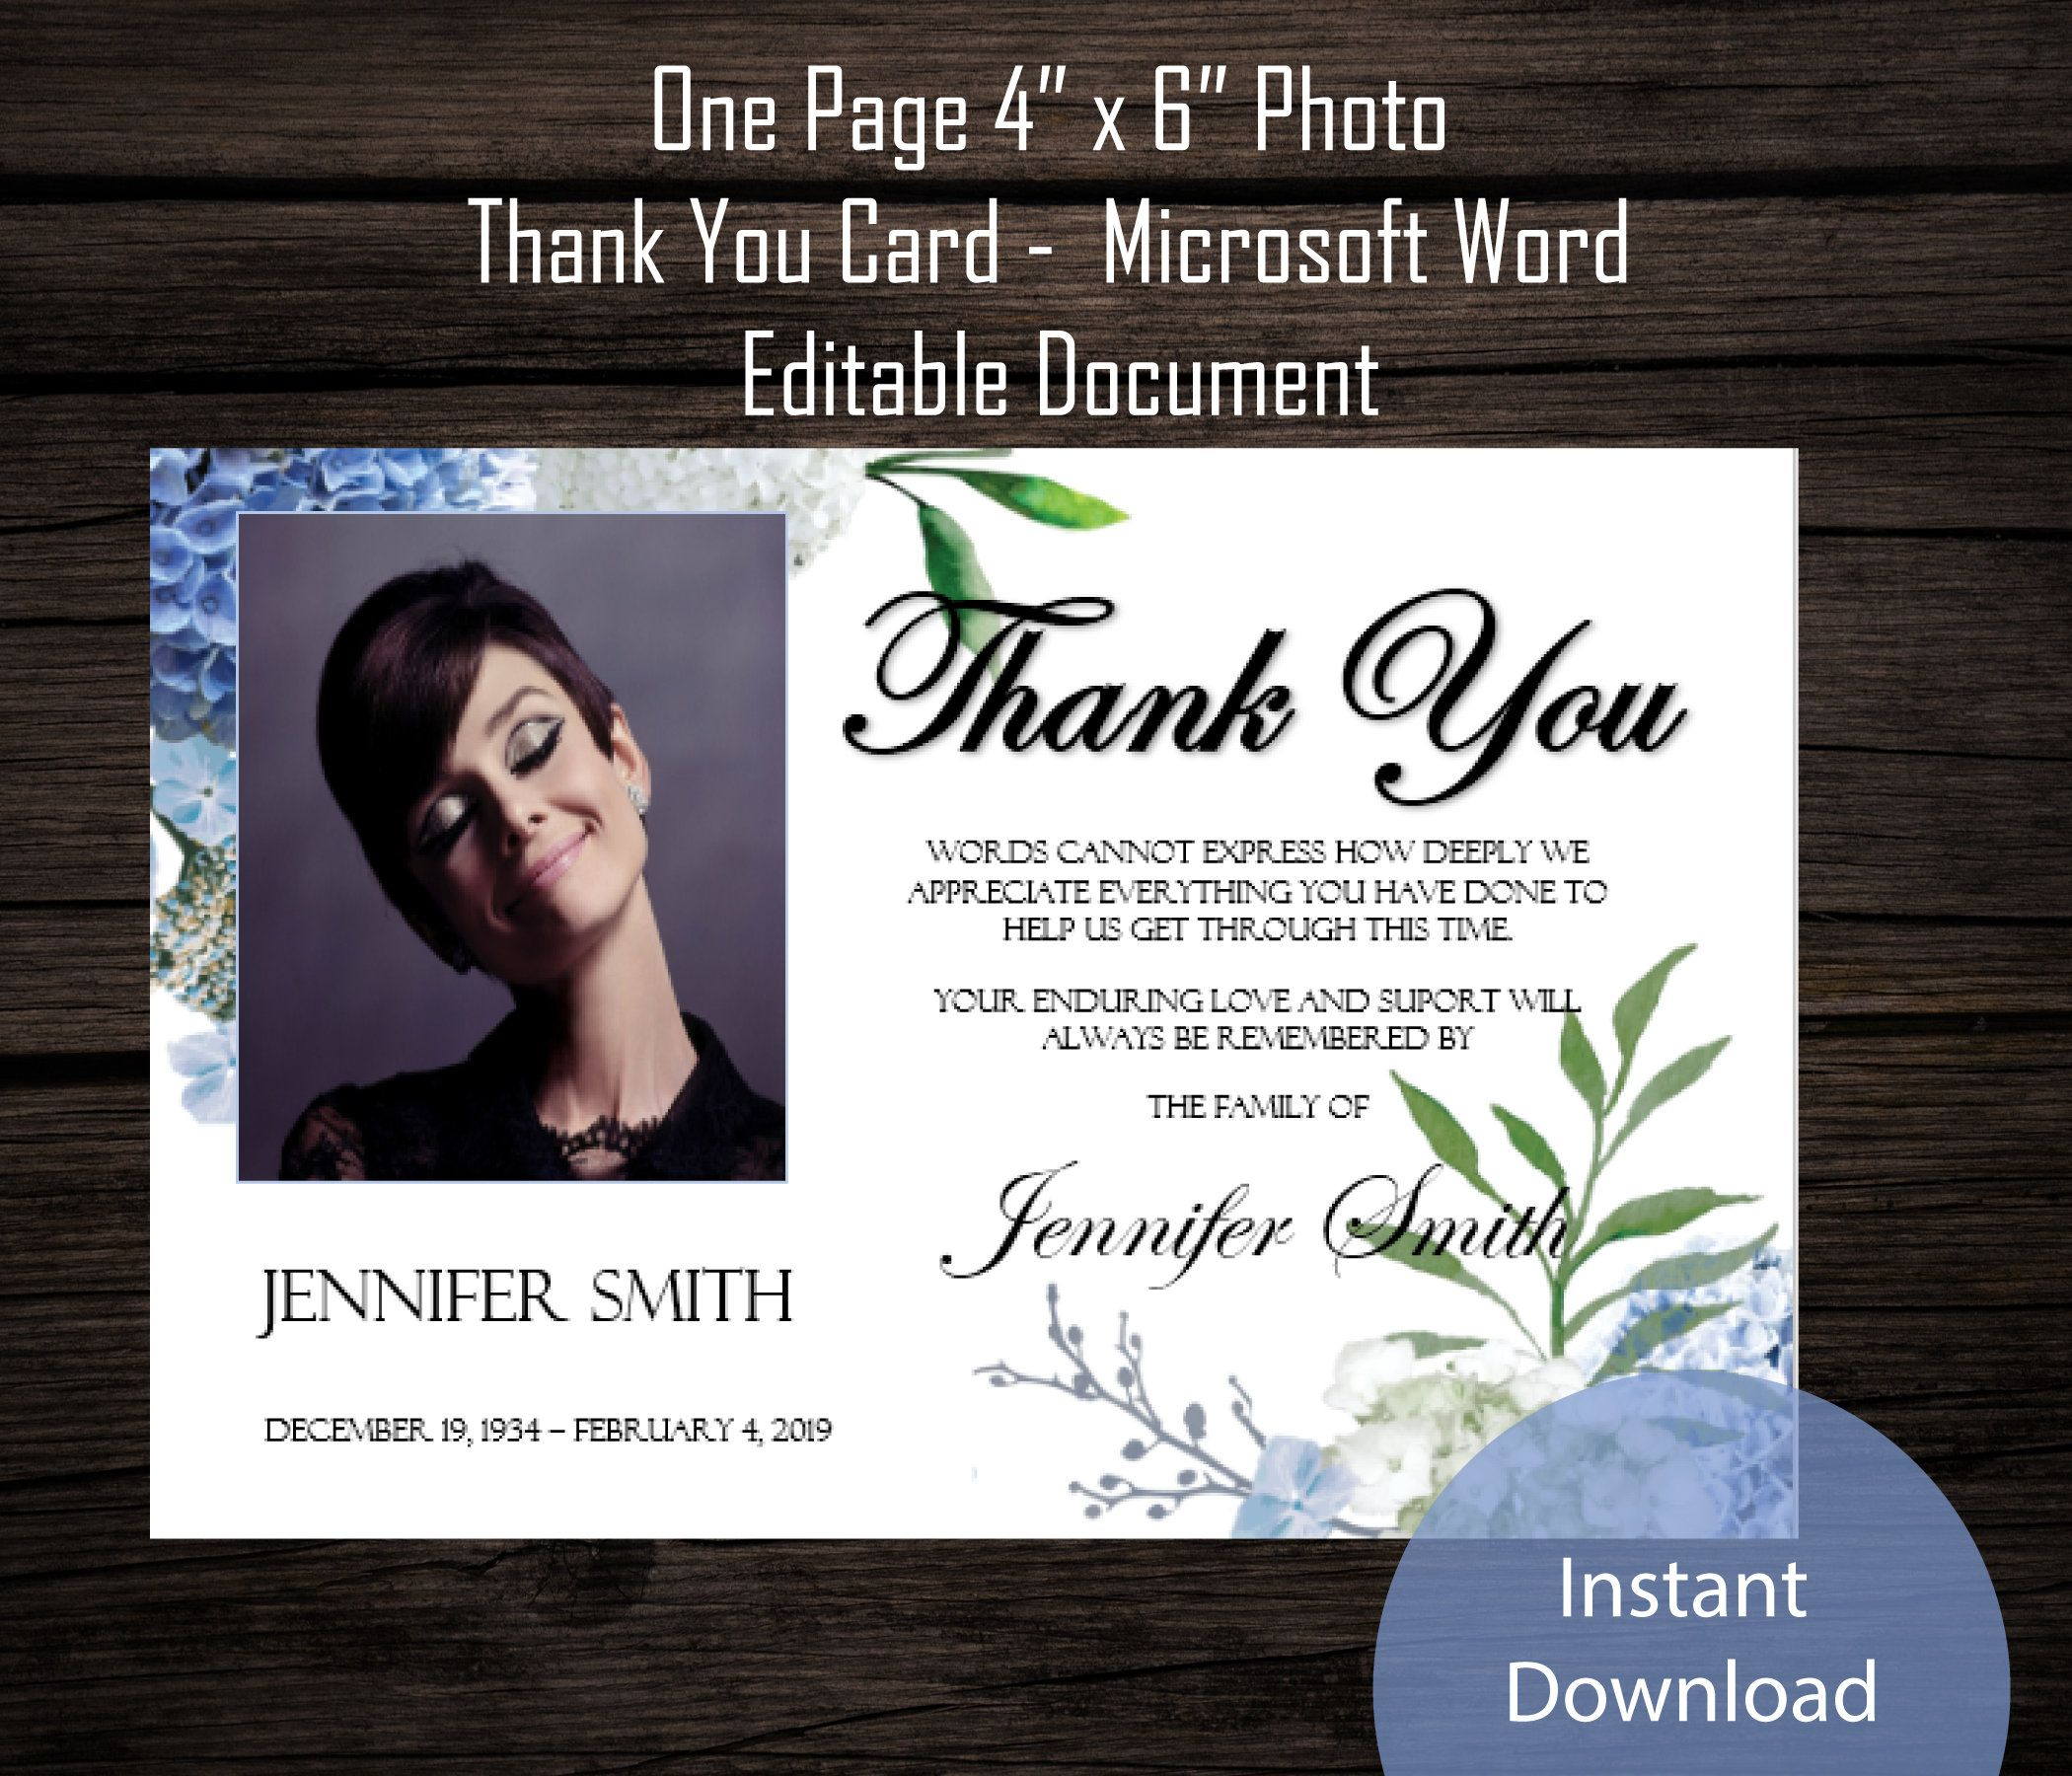 Diy Funeral Photo Thank You Card 4 X 6 Etsy Photo Thank You Cards Thank You Cards Thank You Card Template